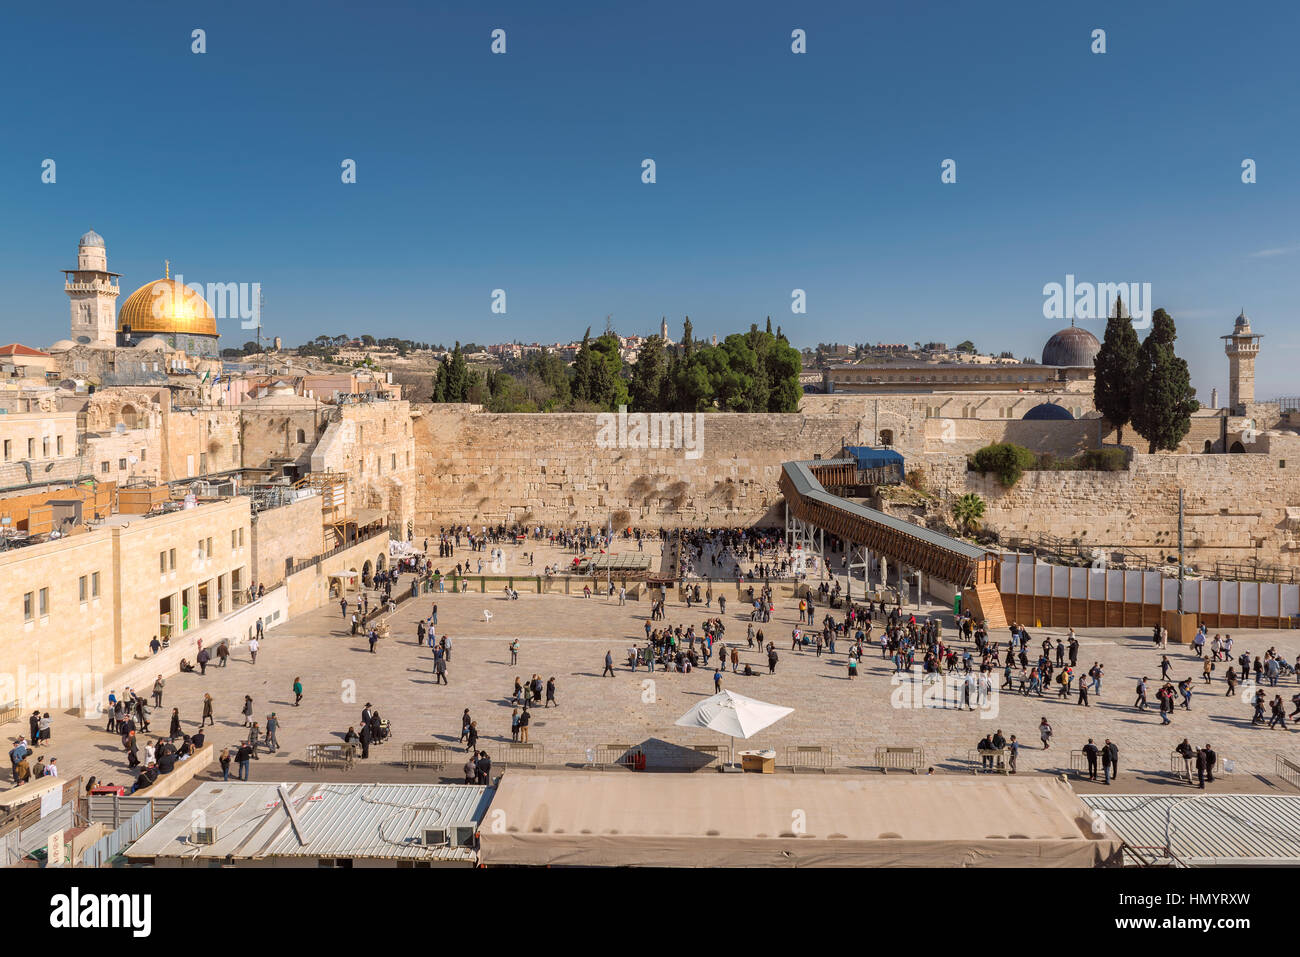 Western Wall and golden Dome of the Rock on Temple Mount, Jerusalem, Israel. - Stock Image